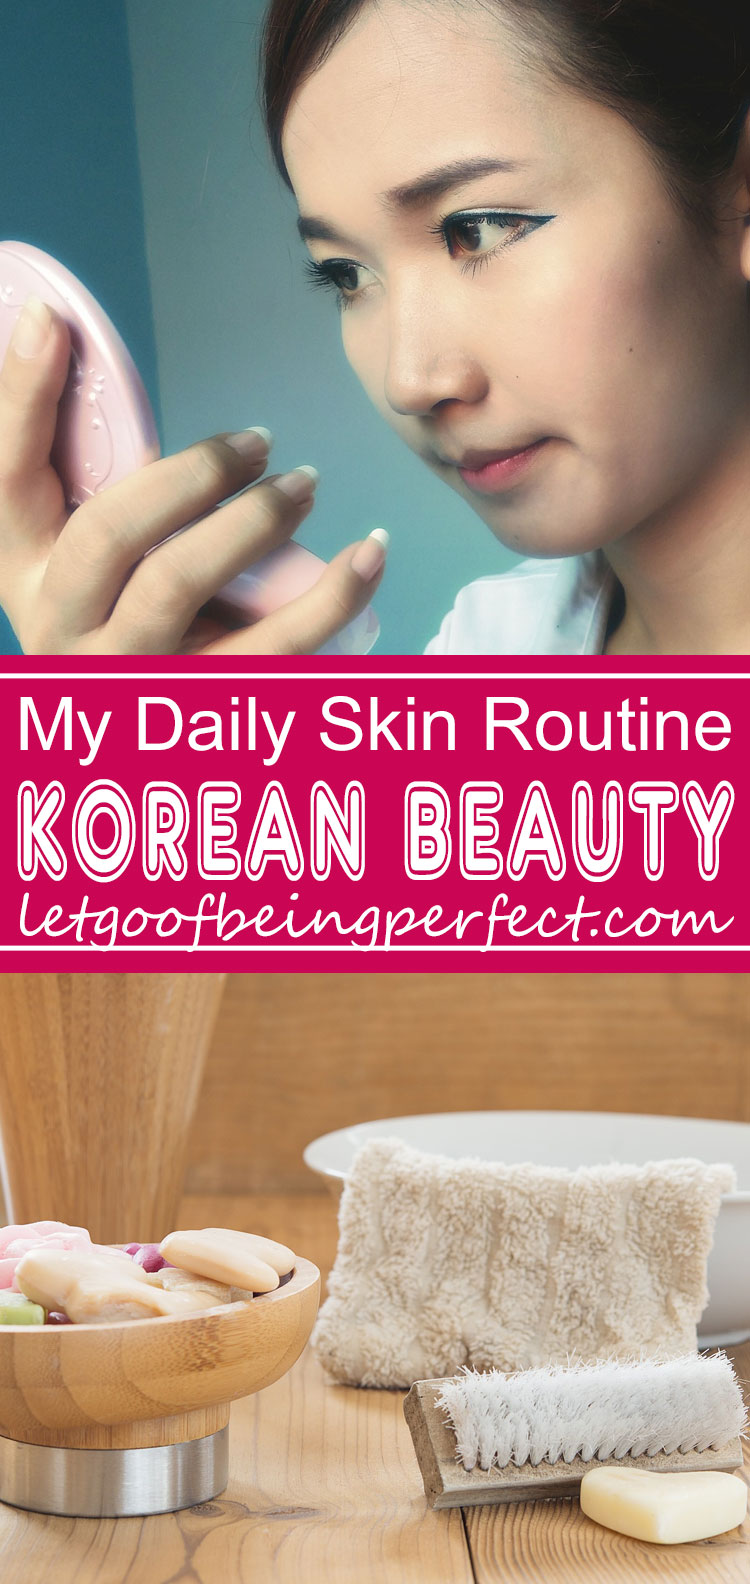 10 Step Korean Beauty Skin Routine - The Korean skin care routine is world famous. Here is my daily beauty steps -- advice from a Korean woman, living in America. Amazon links to the best Korean skin products (tried and true, from me). Layering is absolutely key, so here's how to do it properly. http://letgoofbeingperfect.com/